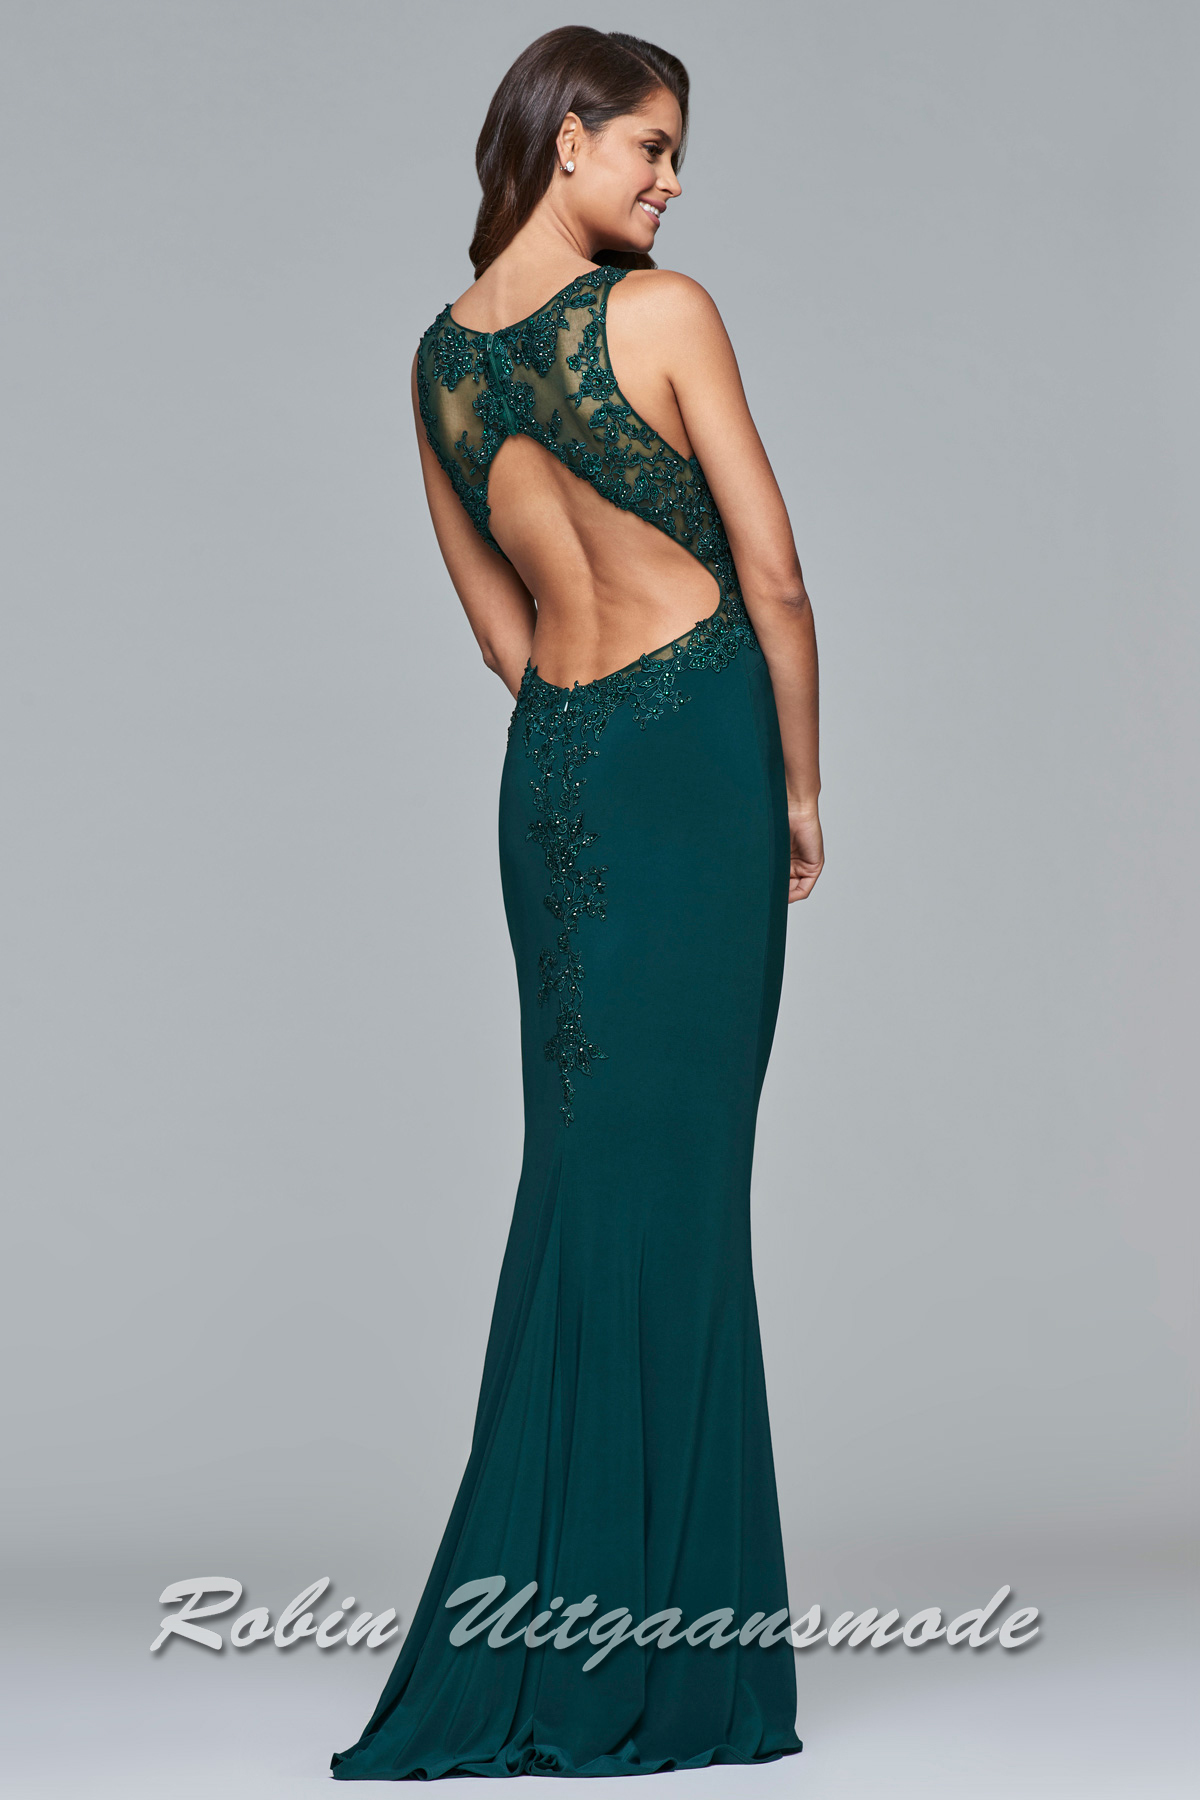 484289f1a09daf Long V-neck dress with lace applique covers the neckline and sides